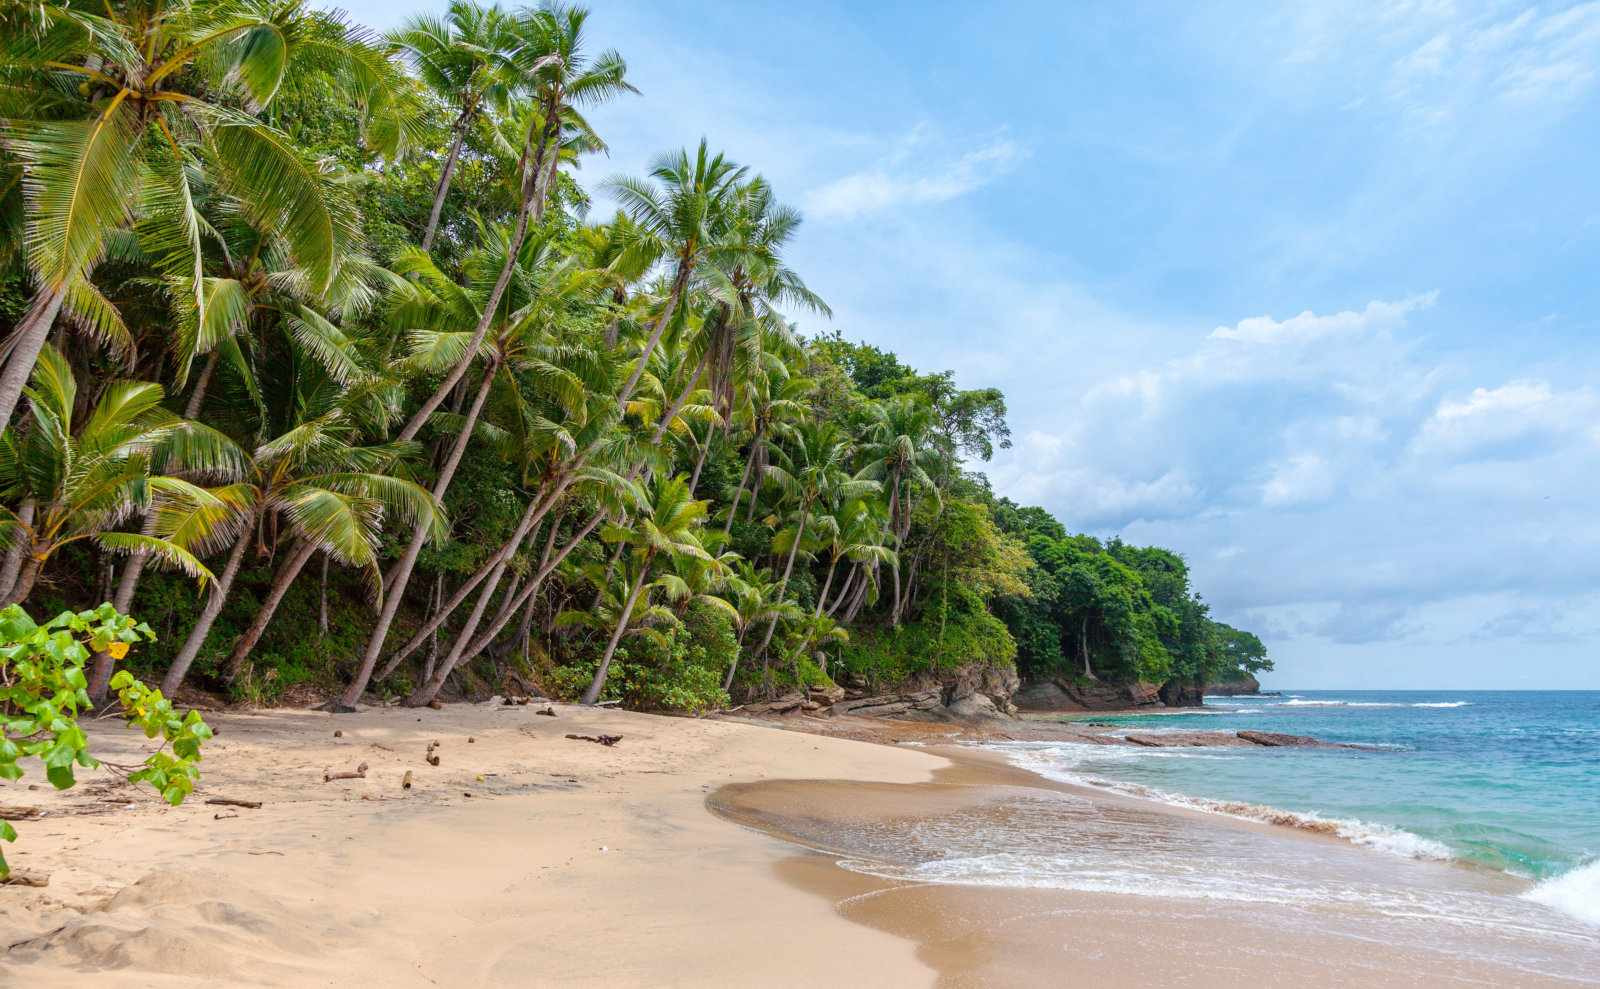 A real-life version of the tropical landscape you can explore in the game The Secret of Monkey Island.